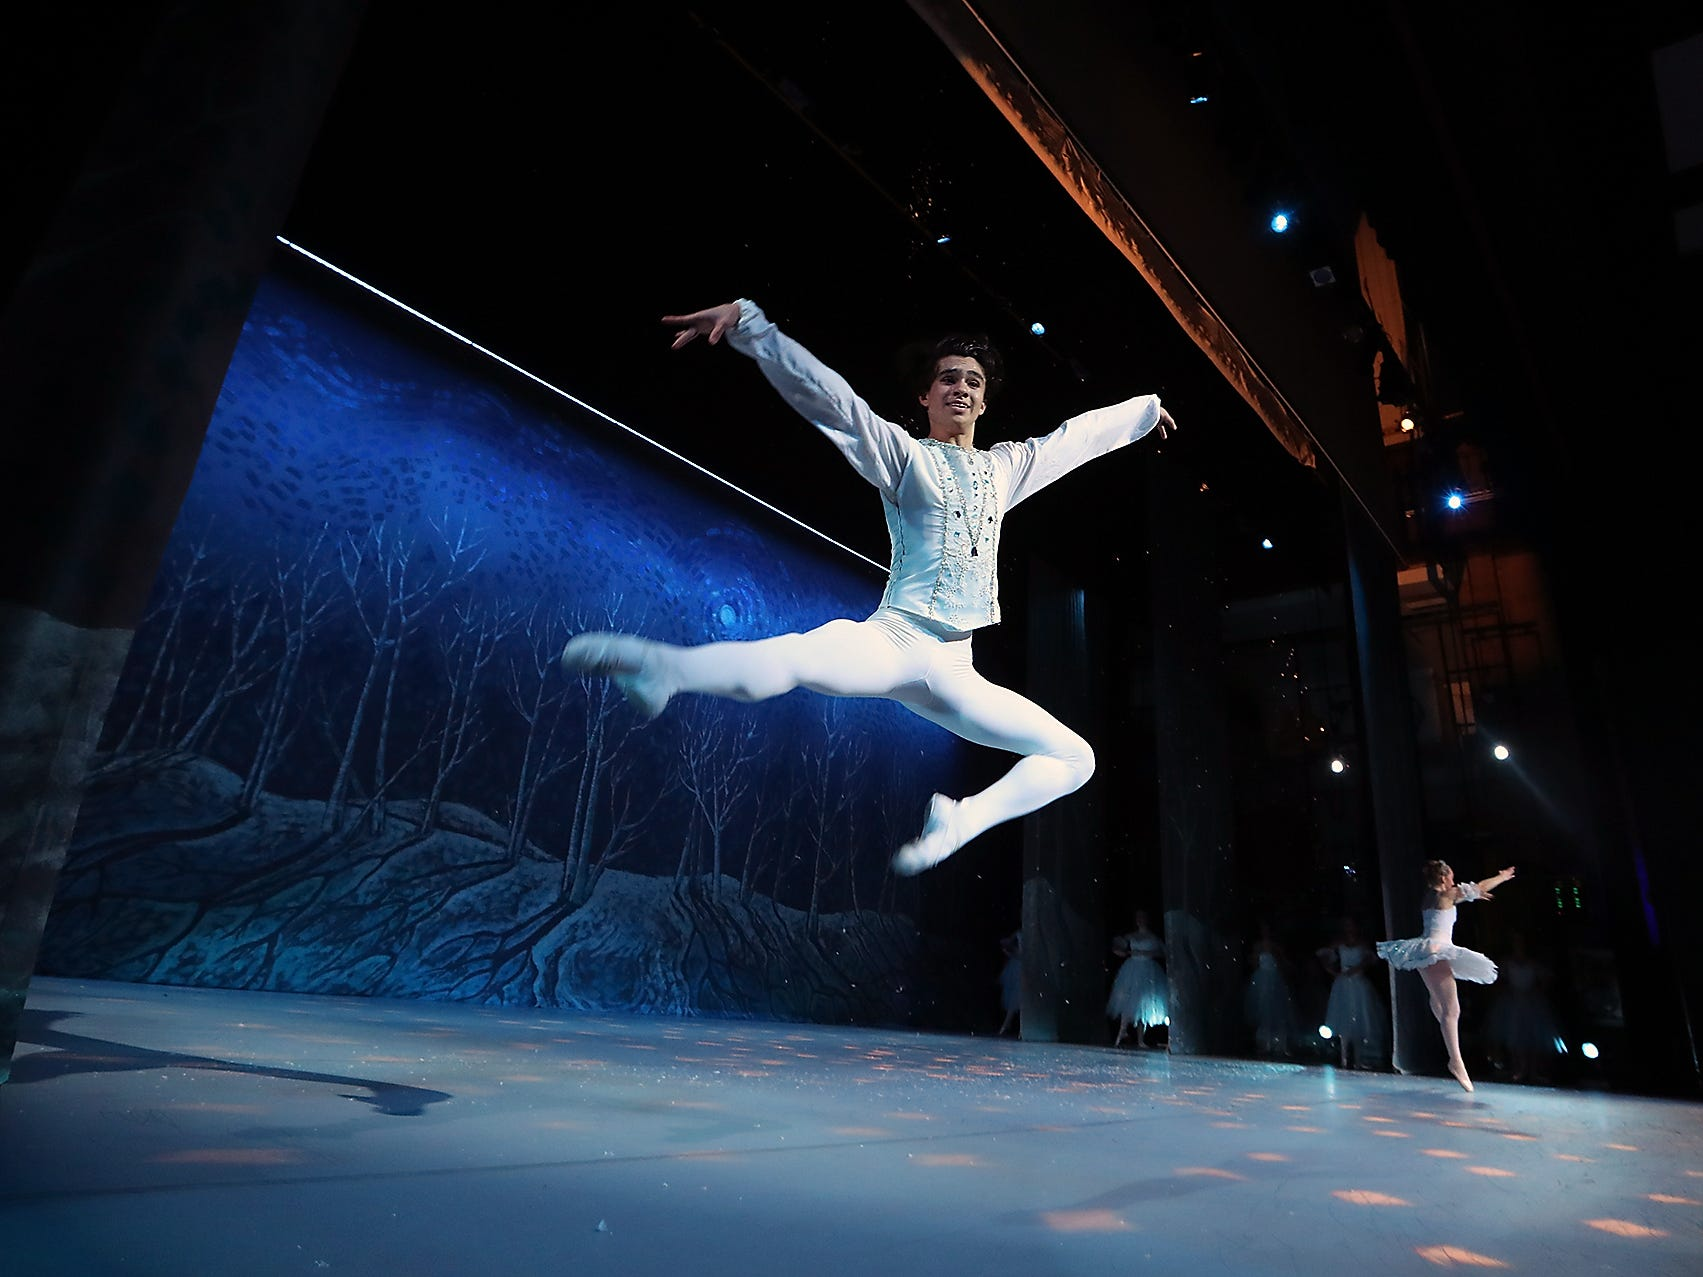 Peninsula Dance Theatre's Jacob Soltero leaps across the stage as he dances the part of the Snow King during rehearsal for the annual The Nutcracker production at the Bremerton Performing Arts Center on Wednesday, November 28, 2018. Performances take place Friday Nov 30th- 7:30 p.m., Saturday Dec 1st - 7:30 p.m. and Sunday Dec 2nd - 3:00 p.m.